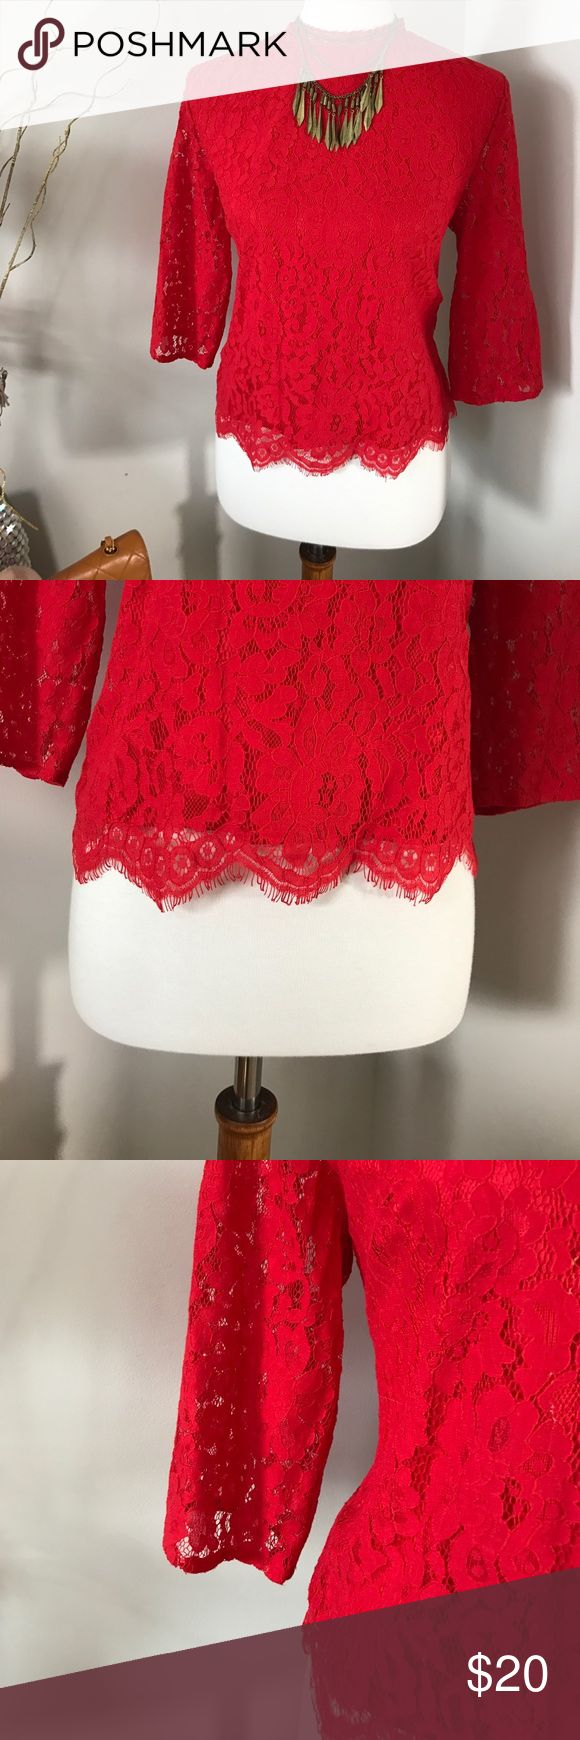 Candy apple red lace high neck top Beautiful flattering and powerful! Dress up and down. Inside the shirt has a little rip but cannot be seen on the outside :) Tops Crop Tops